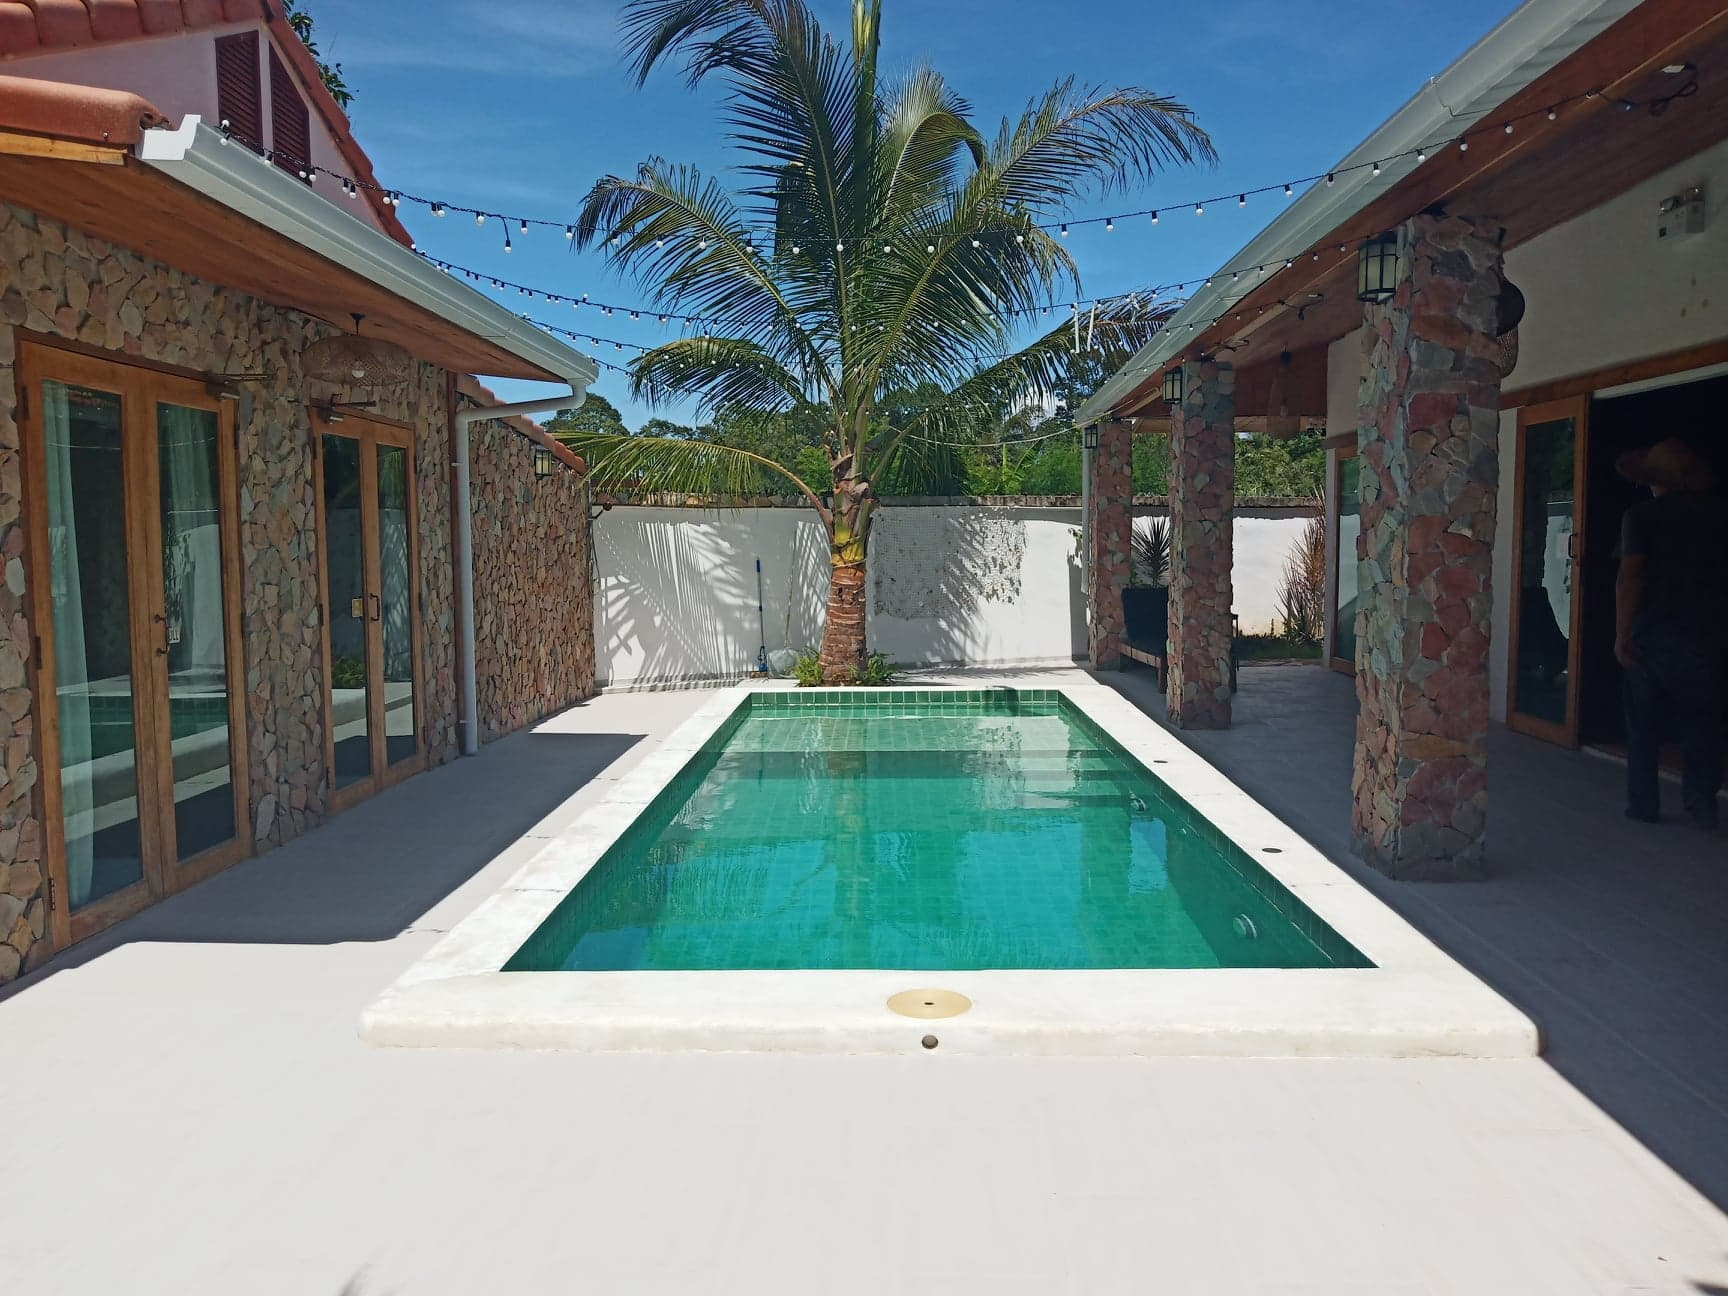 3 Bedrooms Fully Furnished Pool Villa For Sale Near Silver Lake